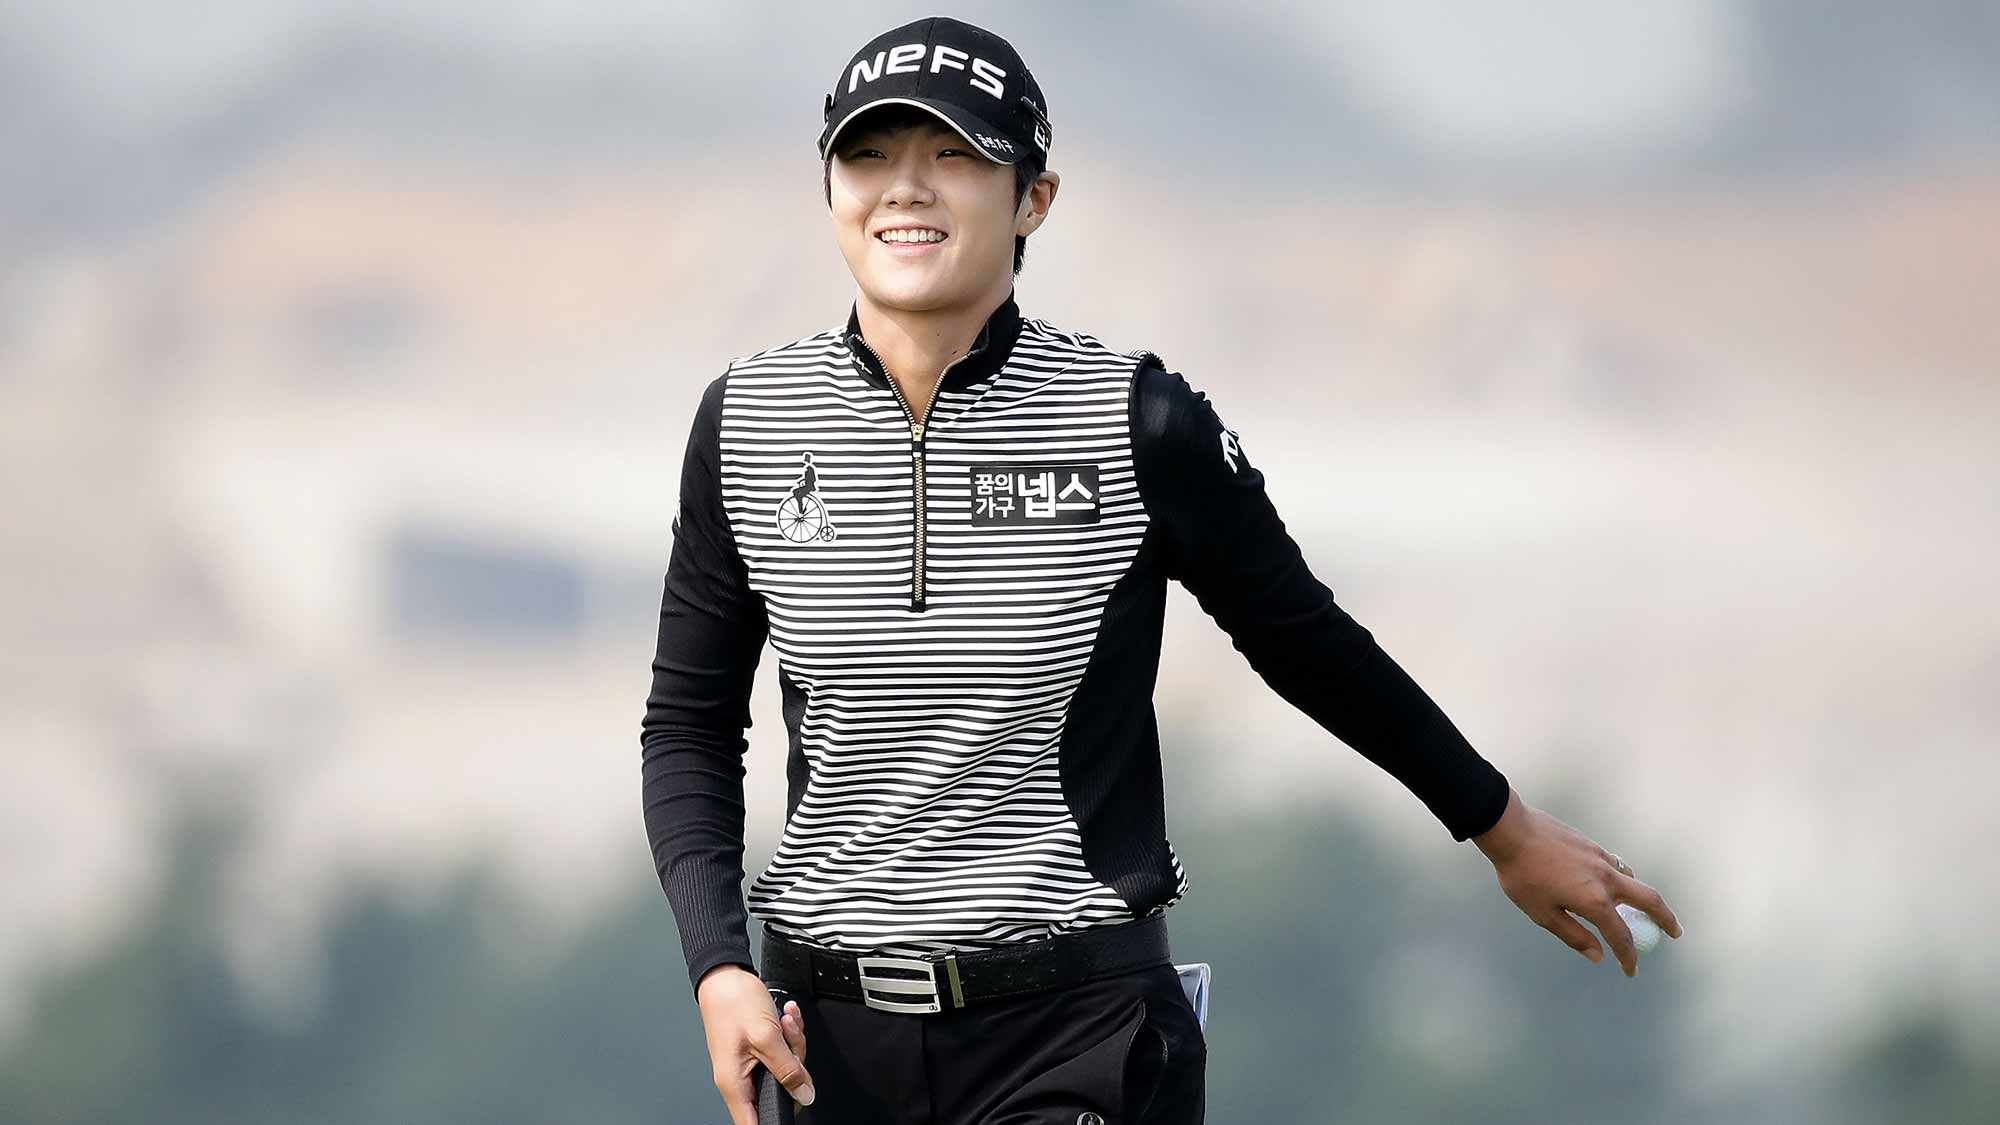 Sung-Hyun Park of South Korea reacts after a birdie putt on the 6th green during the second round of the LPGA KEB-Hana Bank Championship at the Sky 72 Golf Club Ocean Course